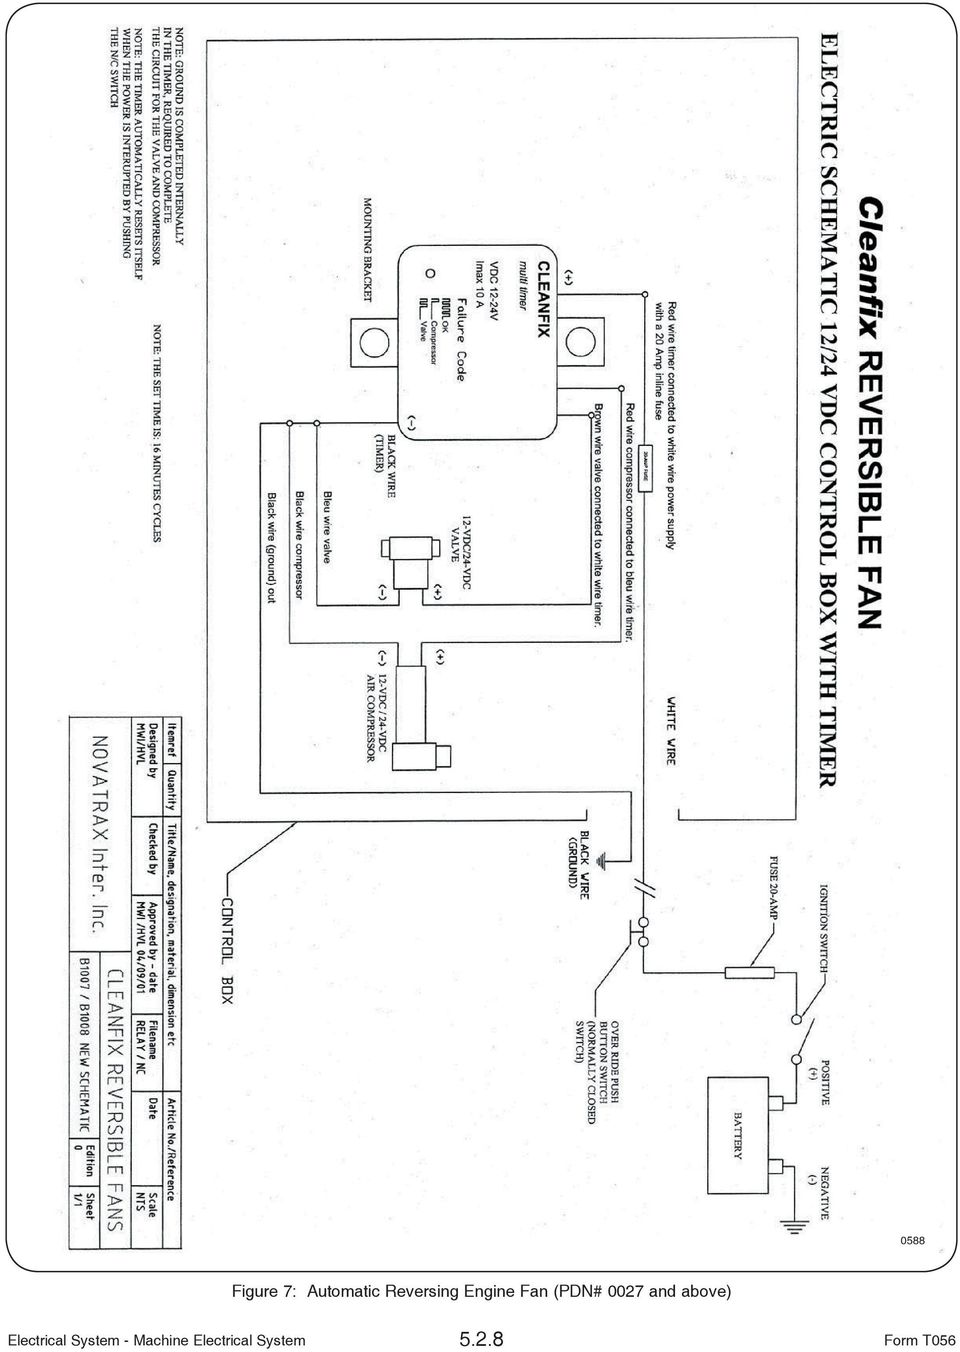 Electrical Systems Iqan Digital Control System Rover 75 Wiring Diagram And Body Electric Above